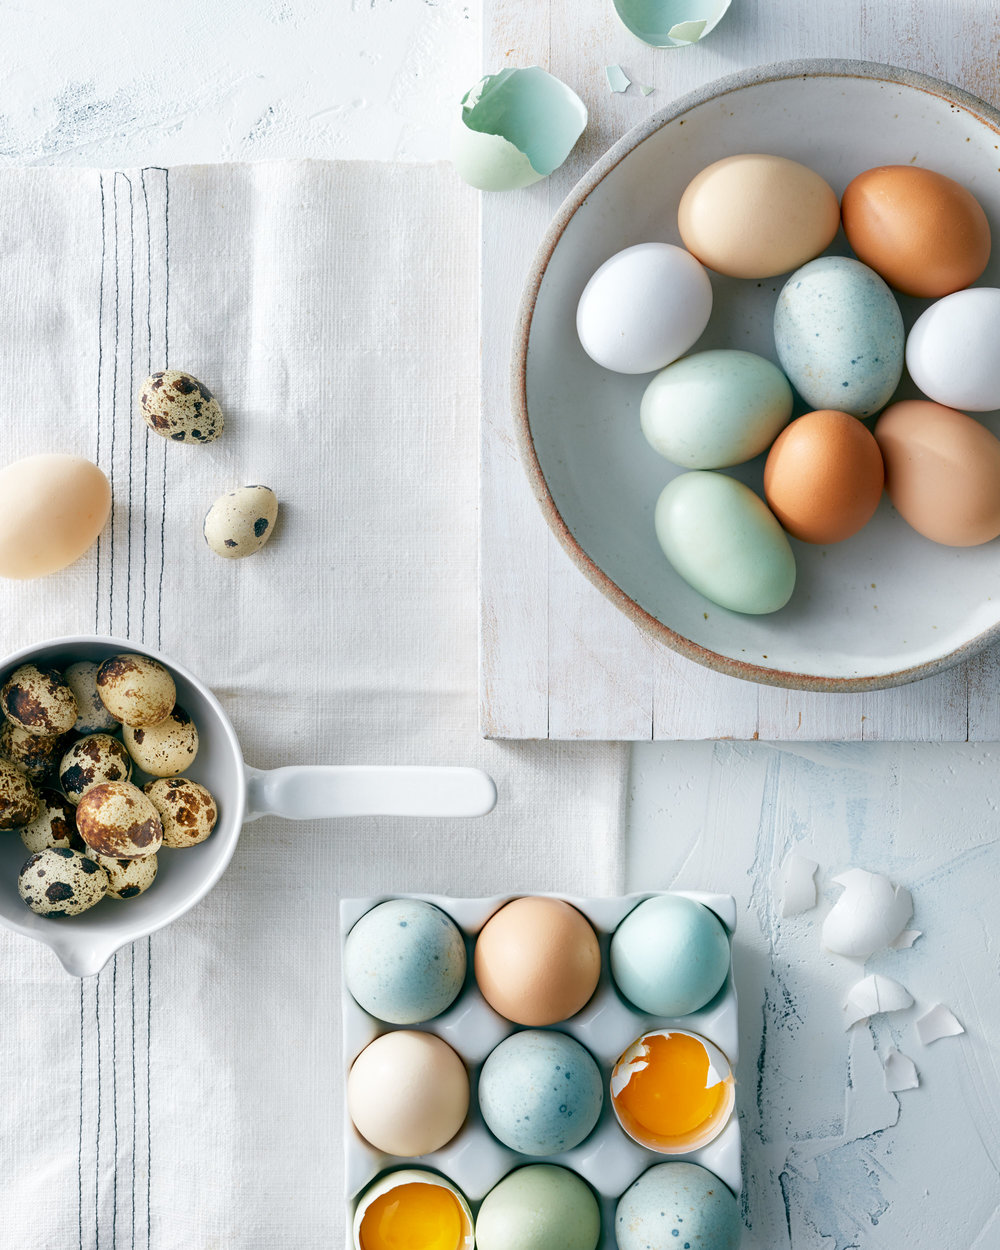 food-eggs-variety-lesliegrow.jpg